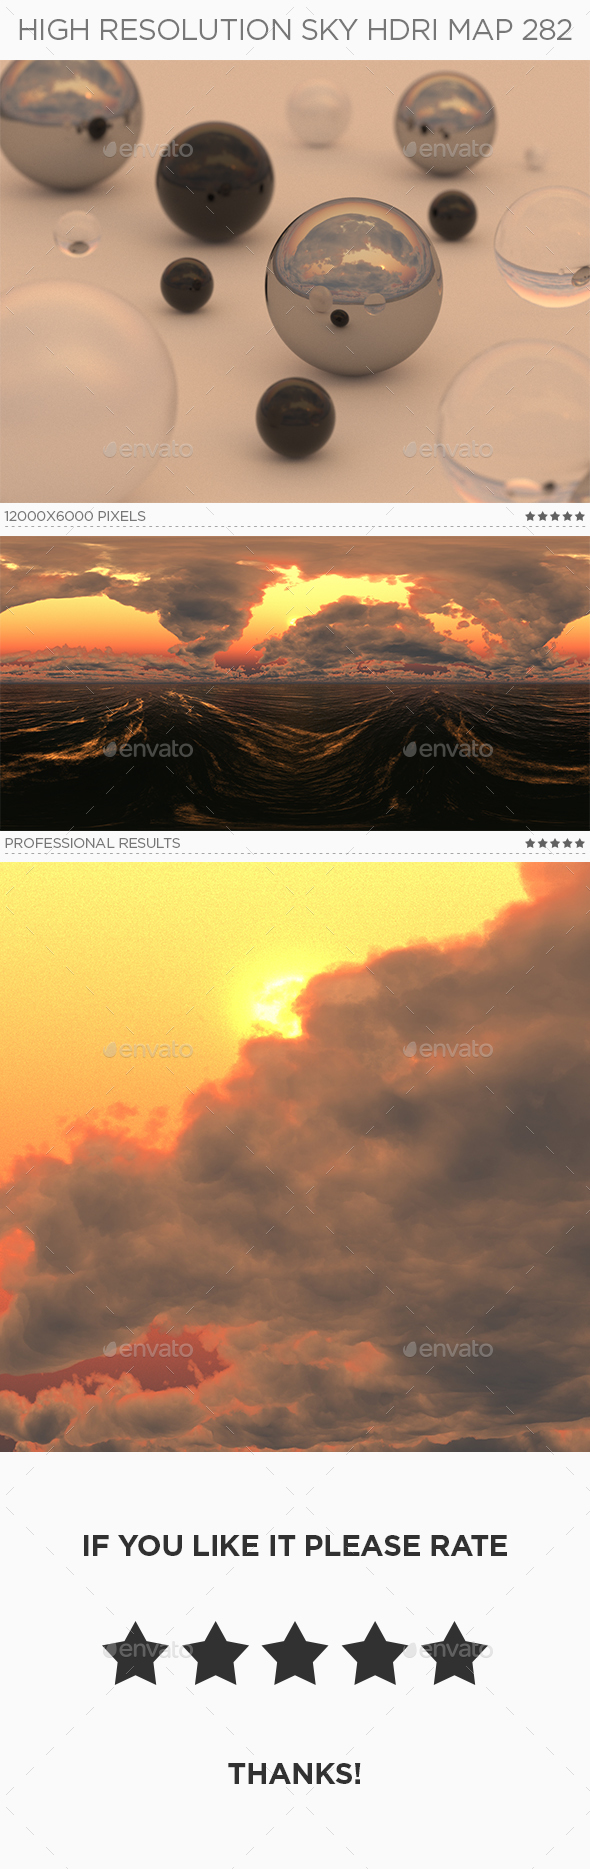 High Resolution Sky HDRi Map 282 - 3DOcean Item for Sale